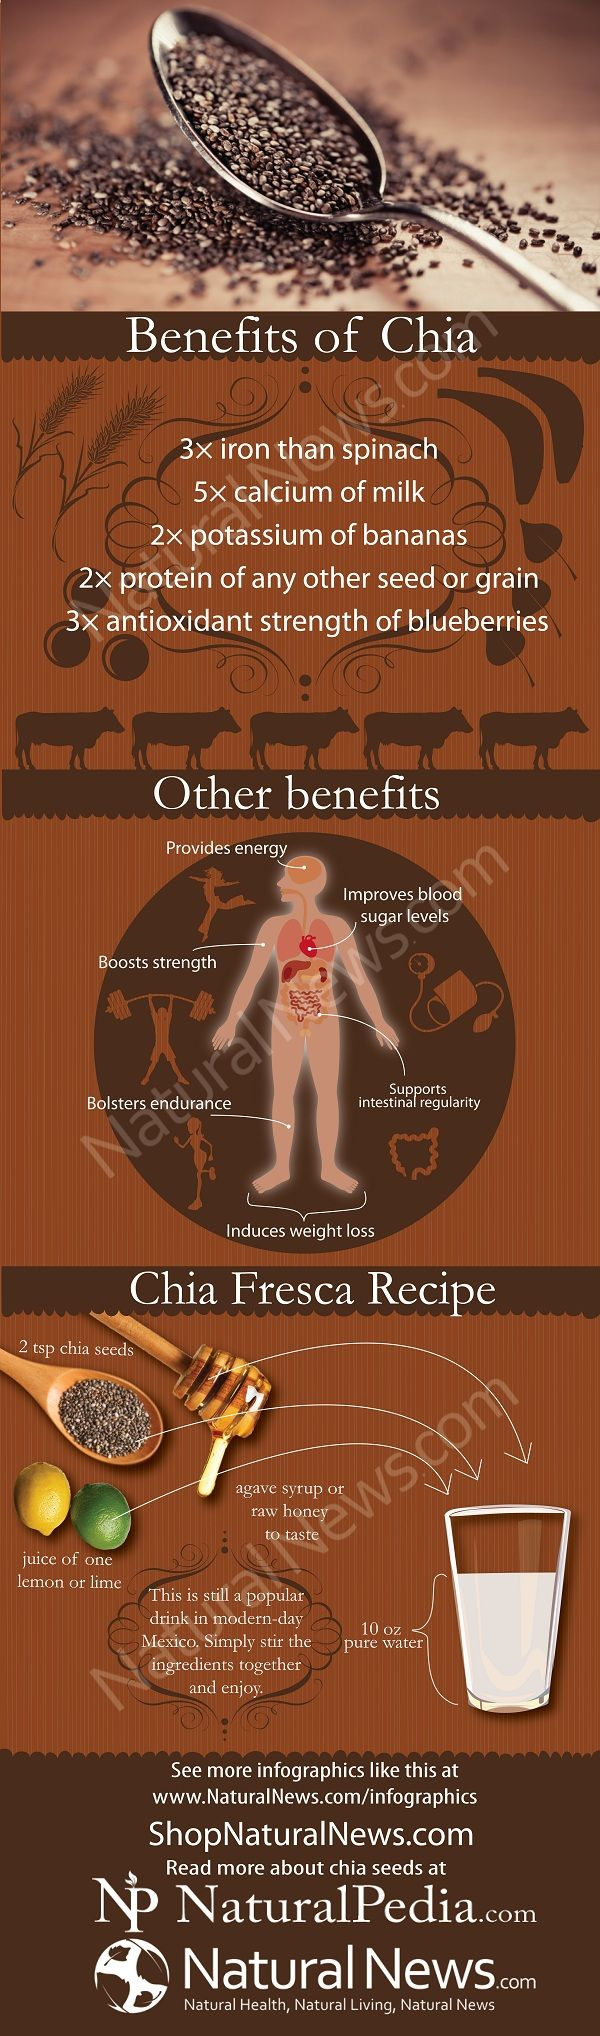 Chia seed benefits